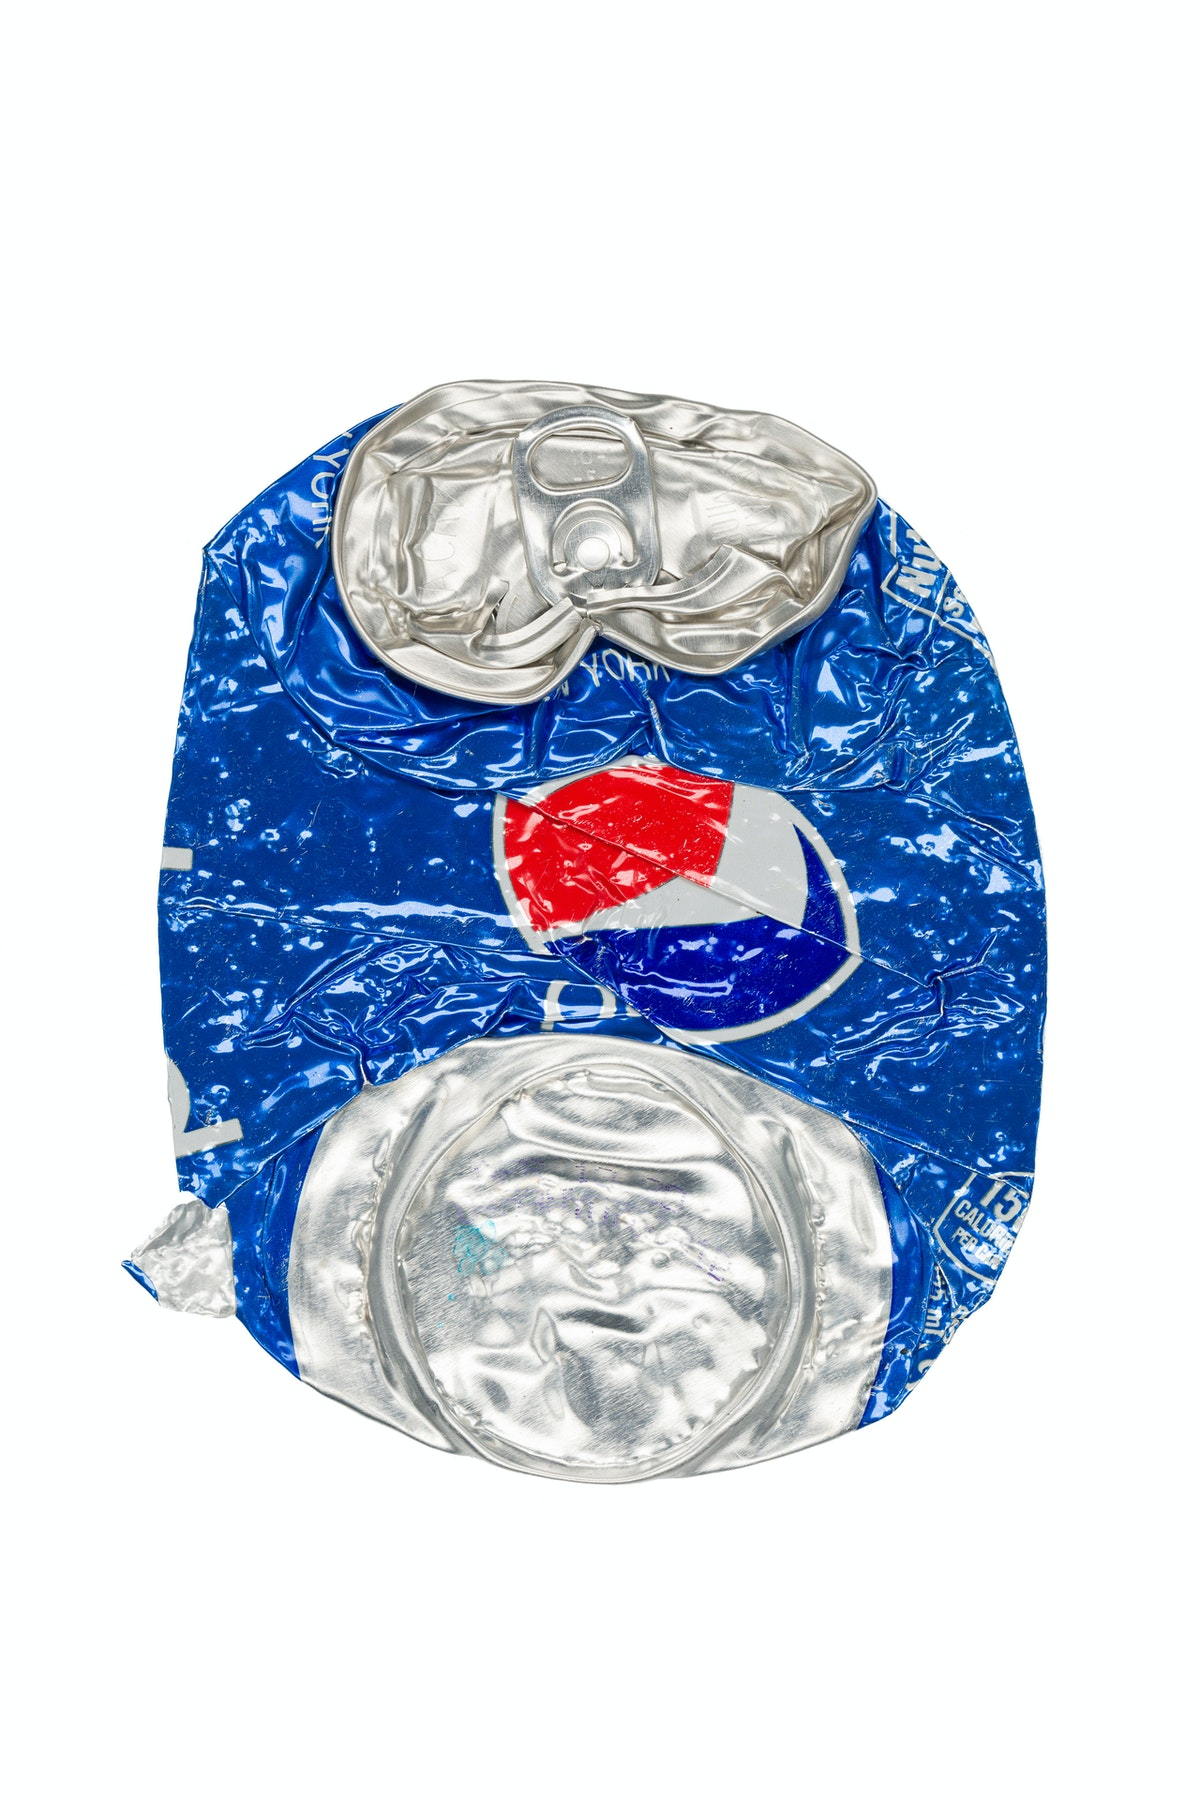 A Case of Pepsi by Charles Cohen